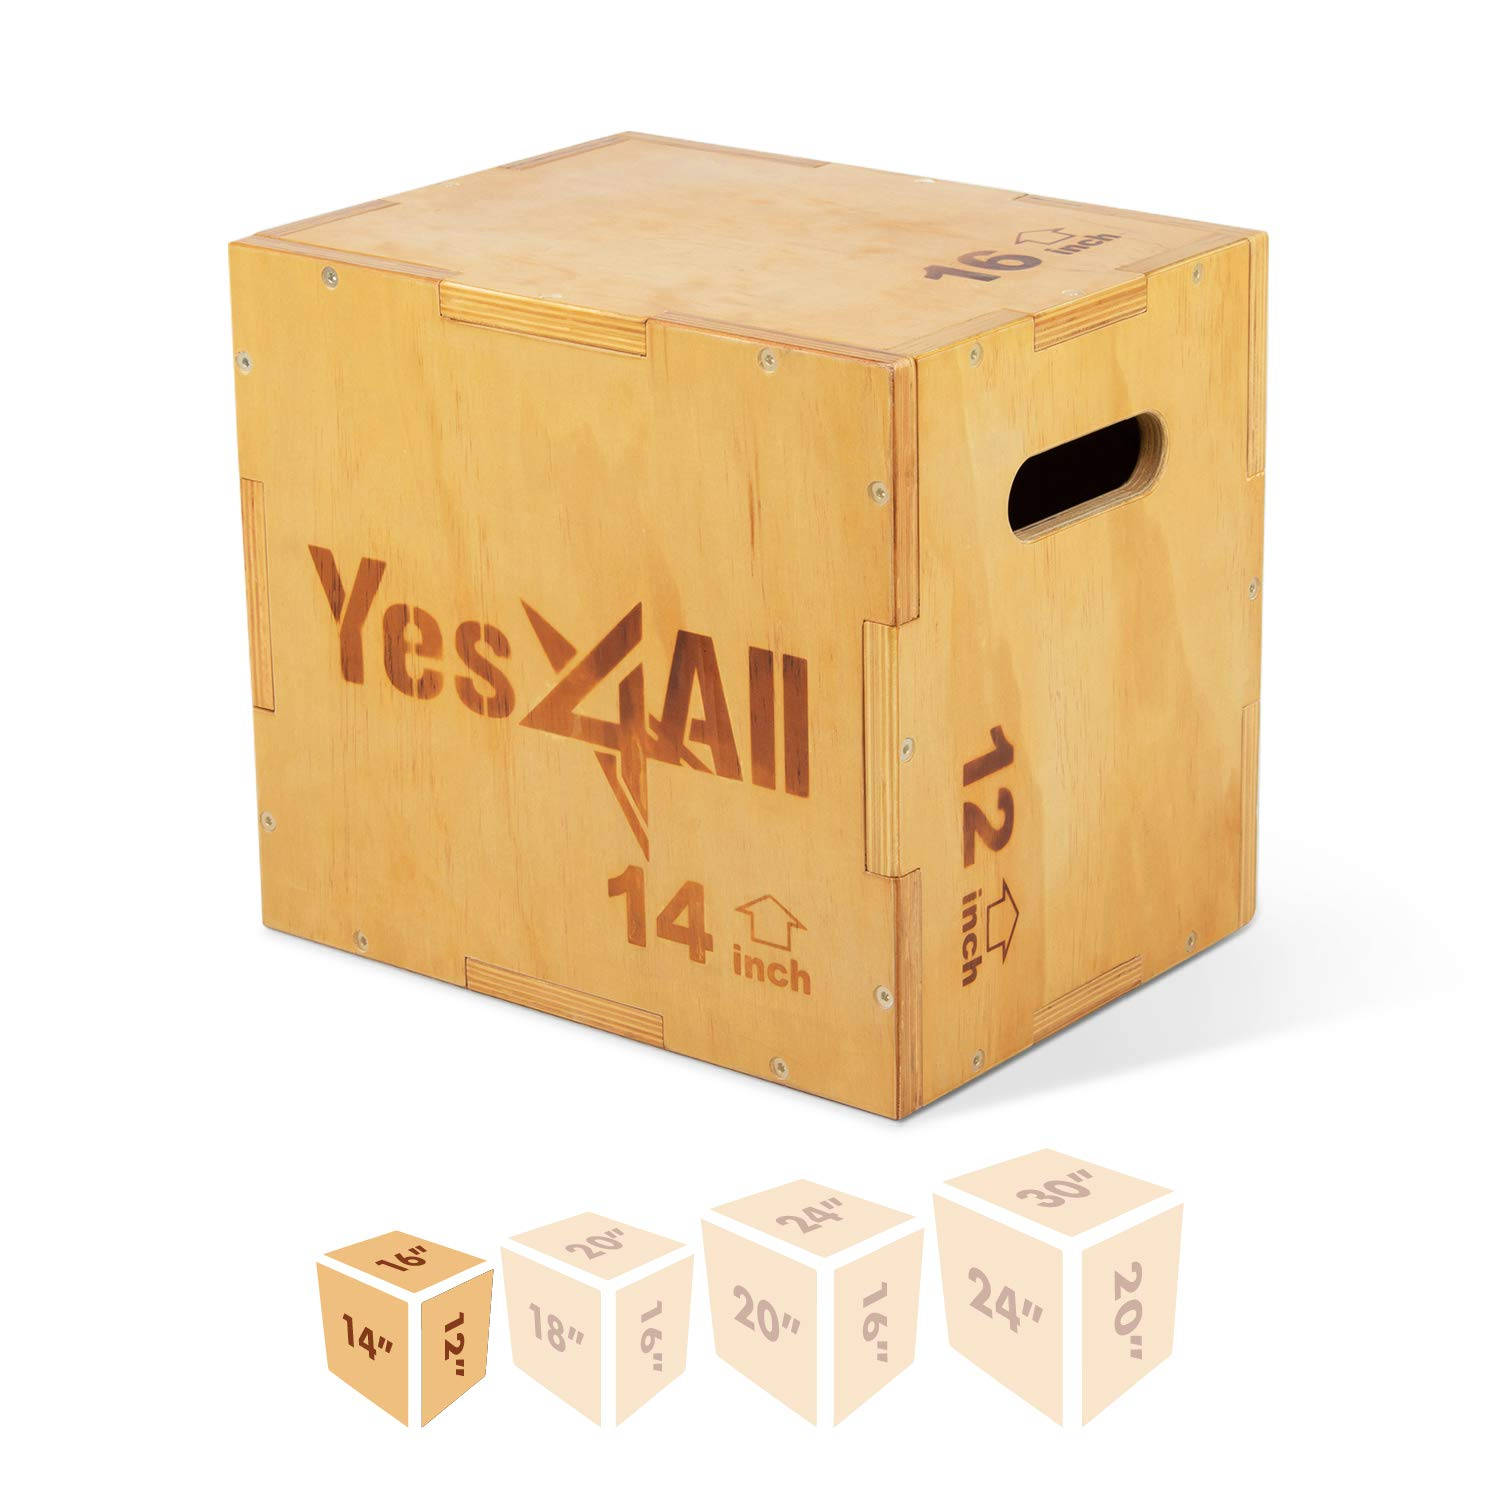 Yes4All Non-Slip/Wooden Plyo Box, Easy-to-Assemble Plyometric Jump Box for Jumping Trainers, Workout Step Platform, Crossfit Equipment for Fitness, Box-Squats and Steps-up, Multi Sizes